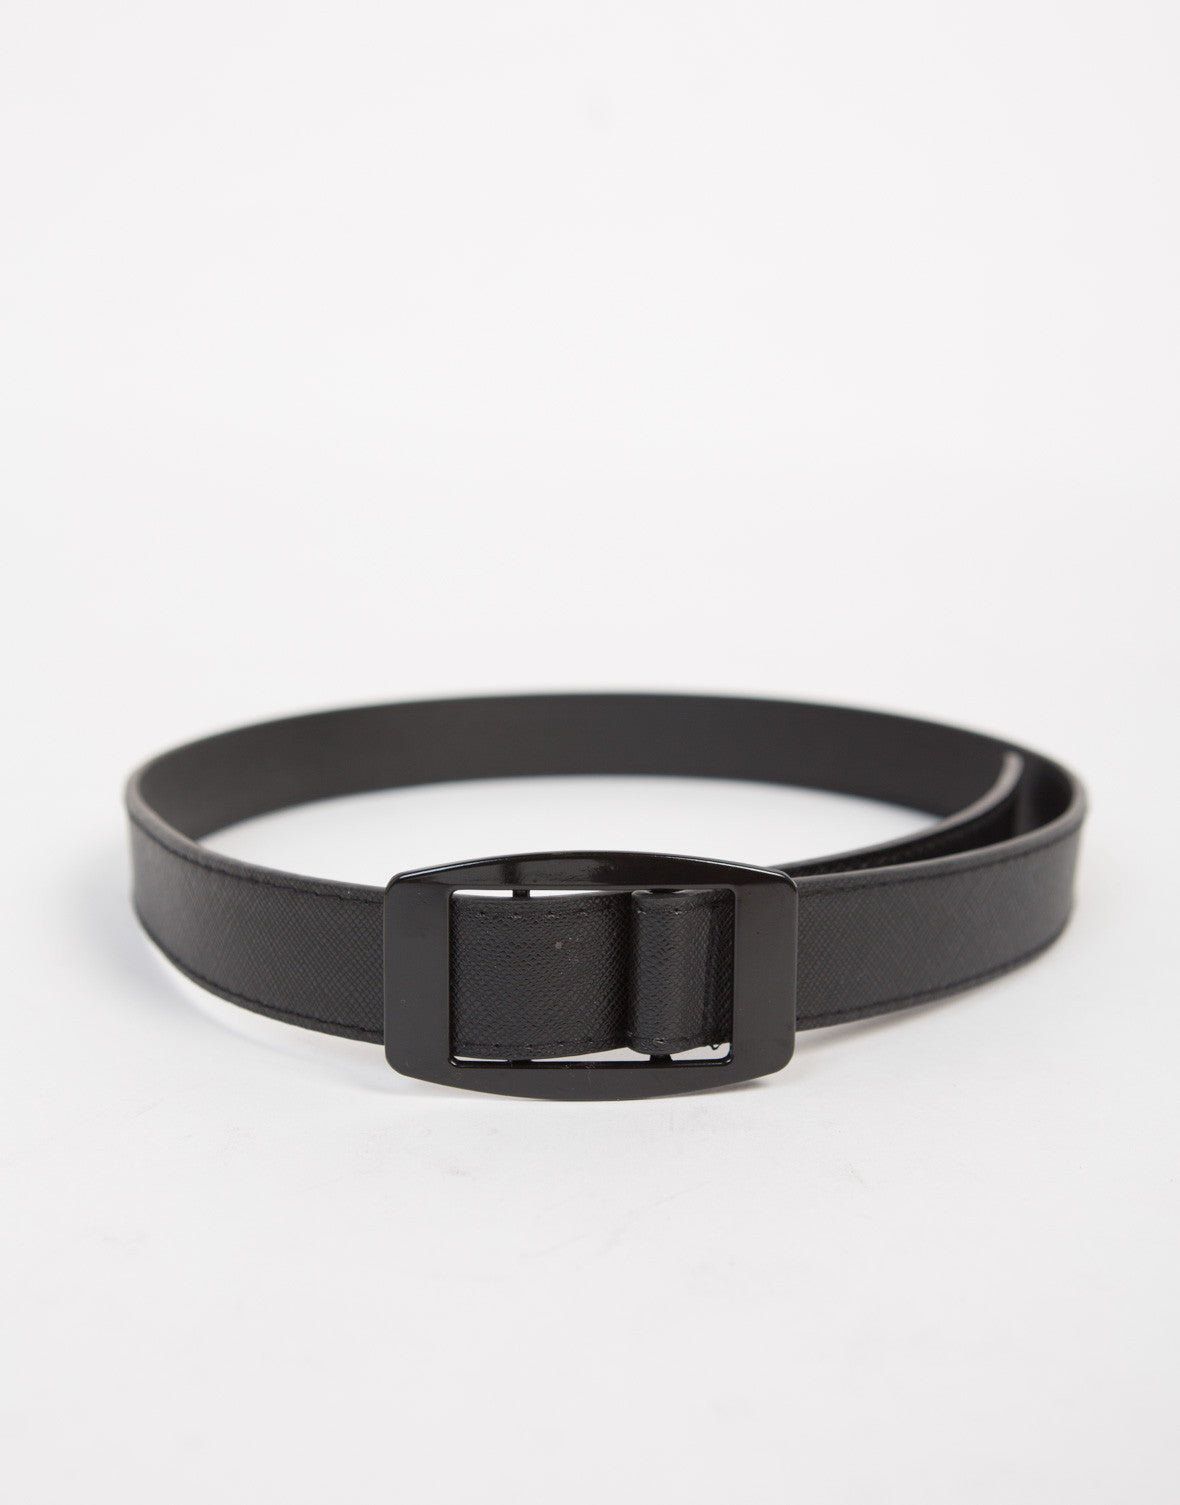 Sleek and Simple Belt